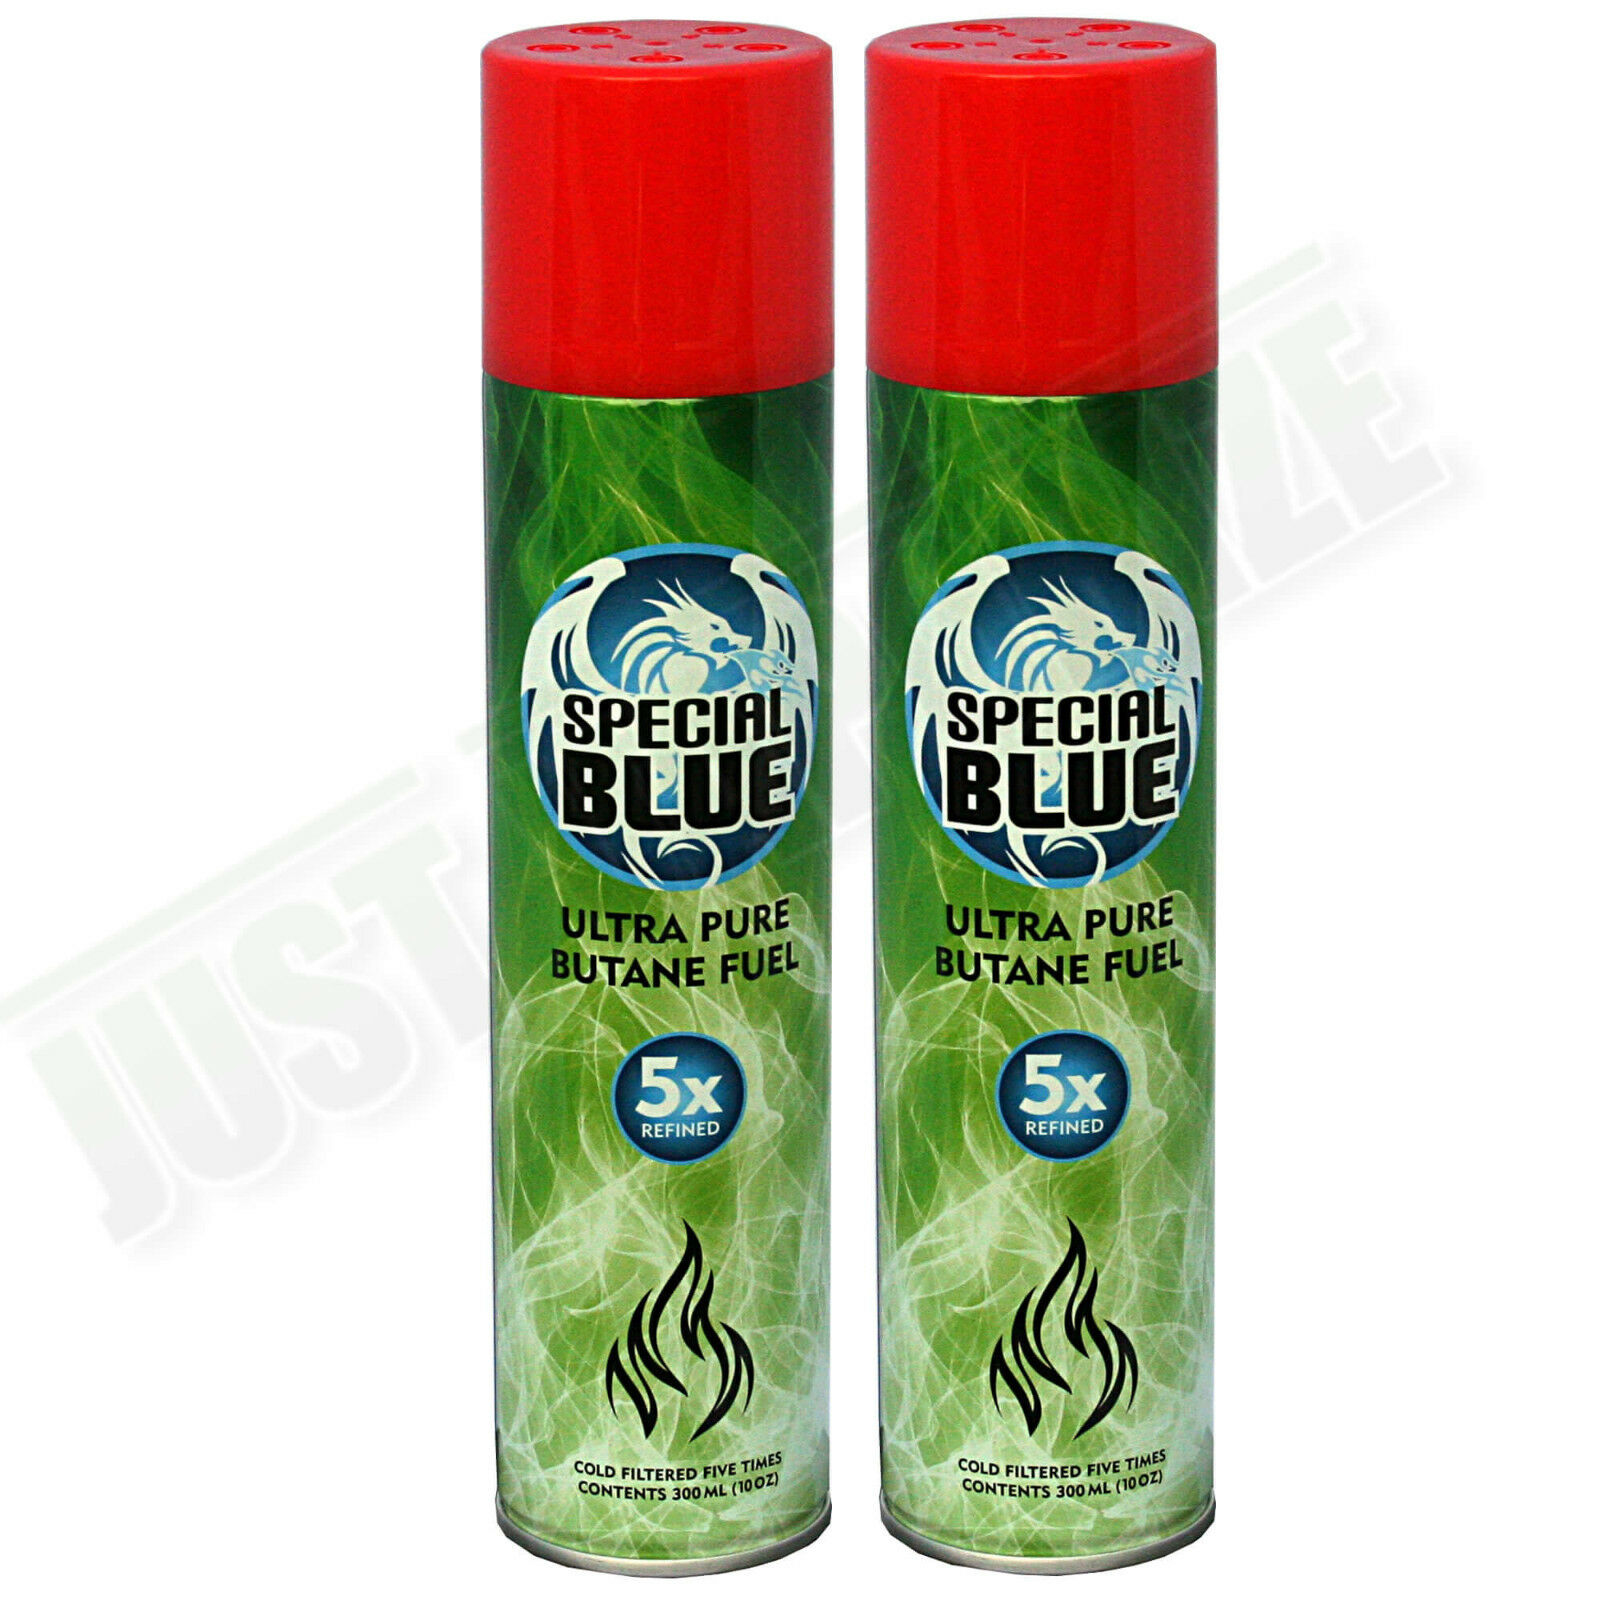 2x Special Blue 5x Refined Butane Gas Extra Purified Fuel Torch ... for Torch Lighter Refill  113lpg